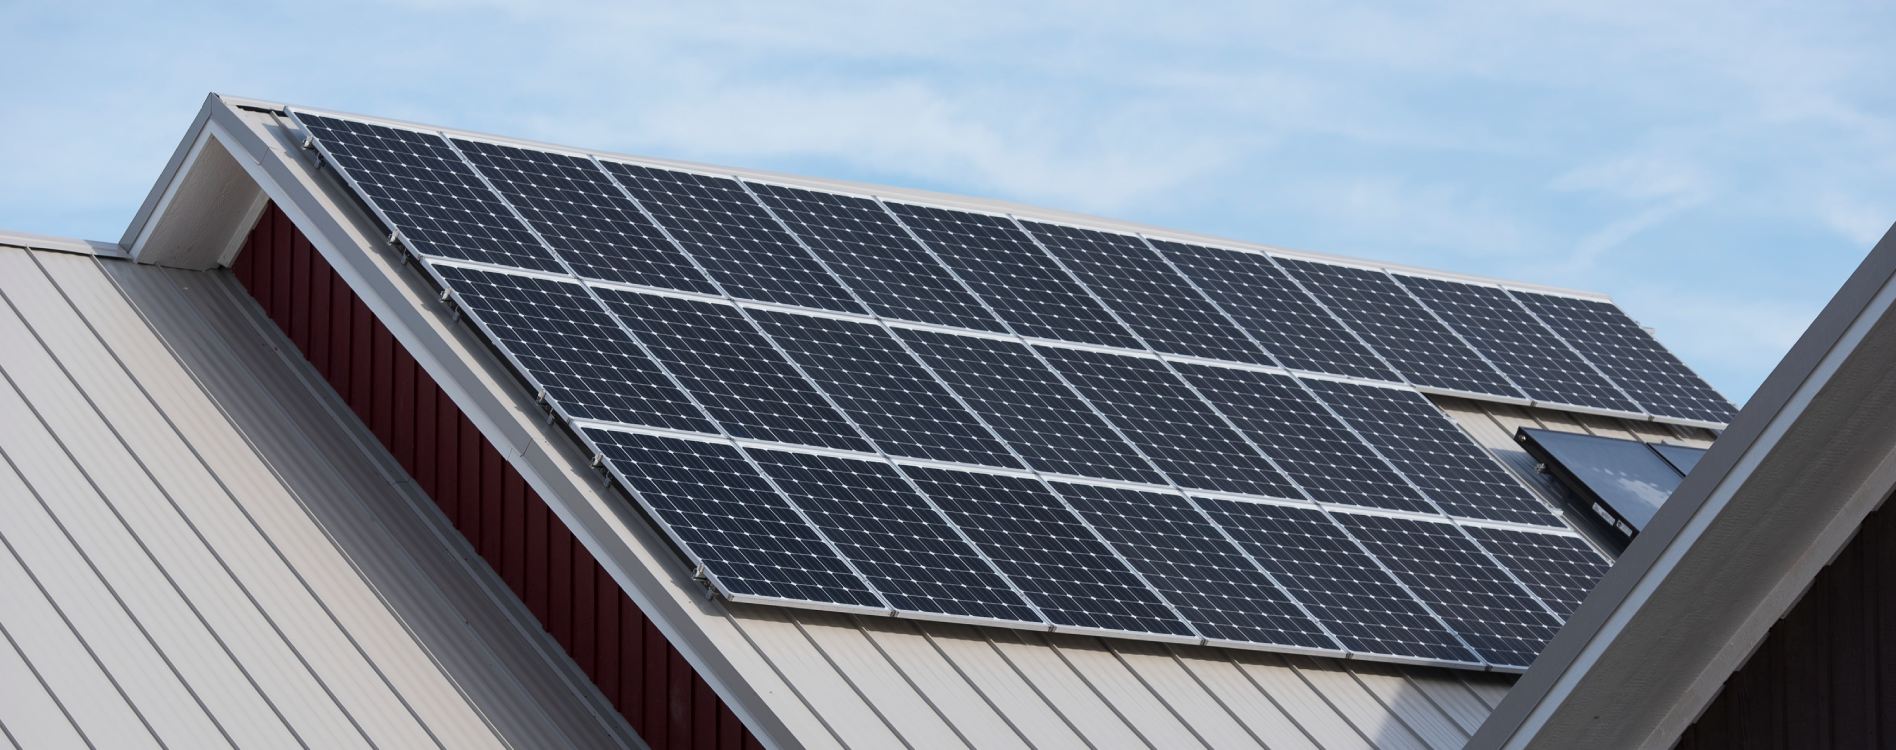 Awesome Things You Can Pick Up From Studying Solar Panel Home